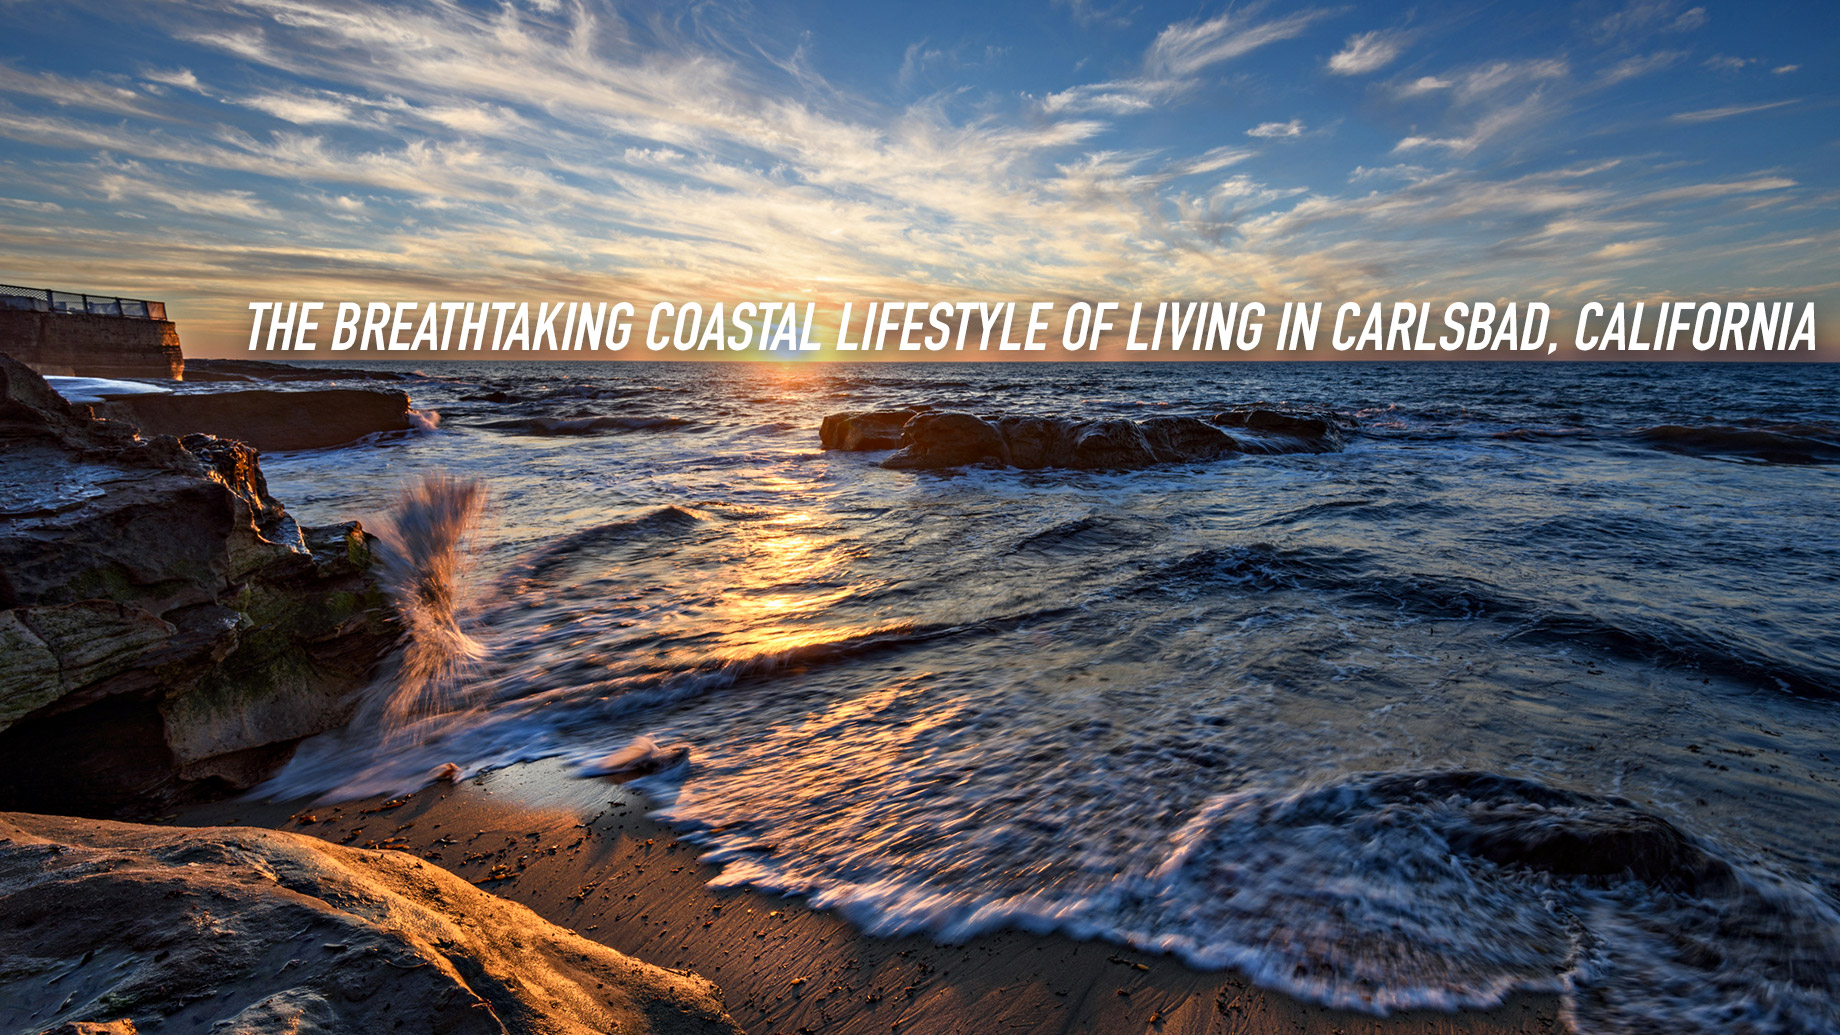 The Breathtaking Coastal Lifestyle of Living in Carlsbad, California